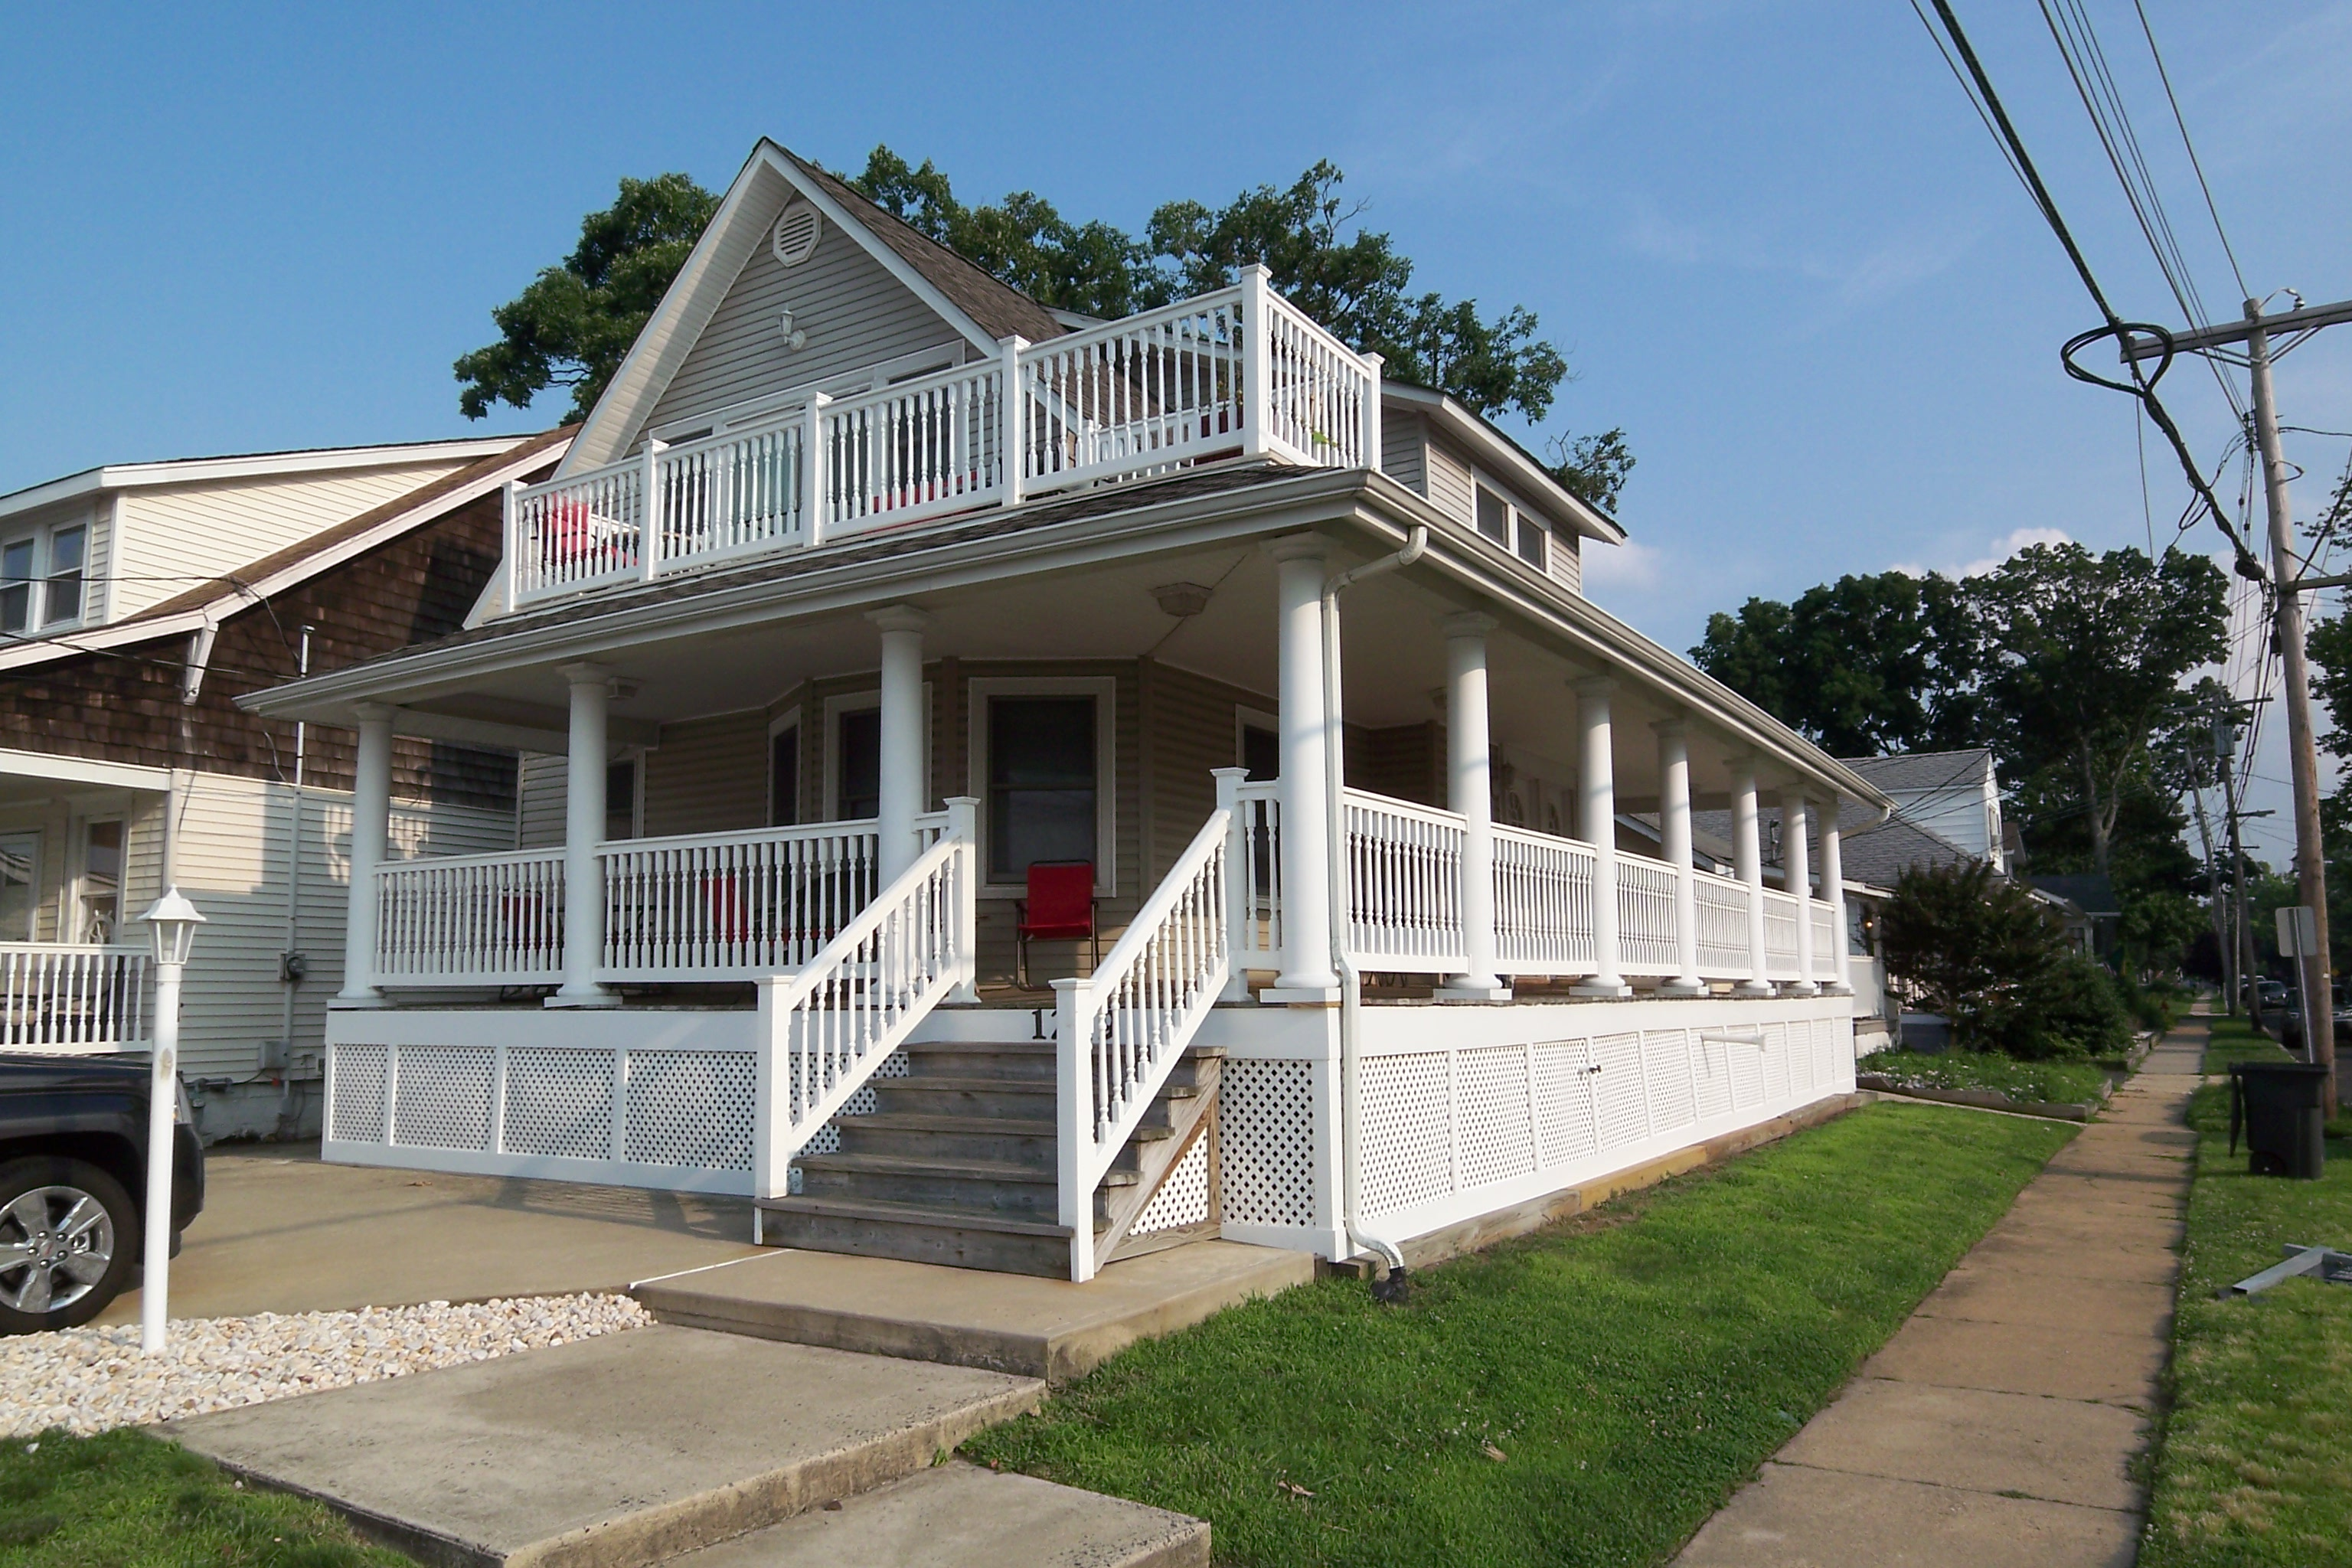 Multi-Family Home for Sale at Waterfront Property 1219 River Rd Belmar, New Jersey 07719 United States